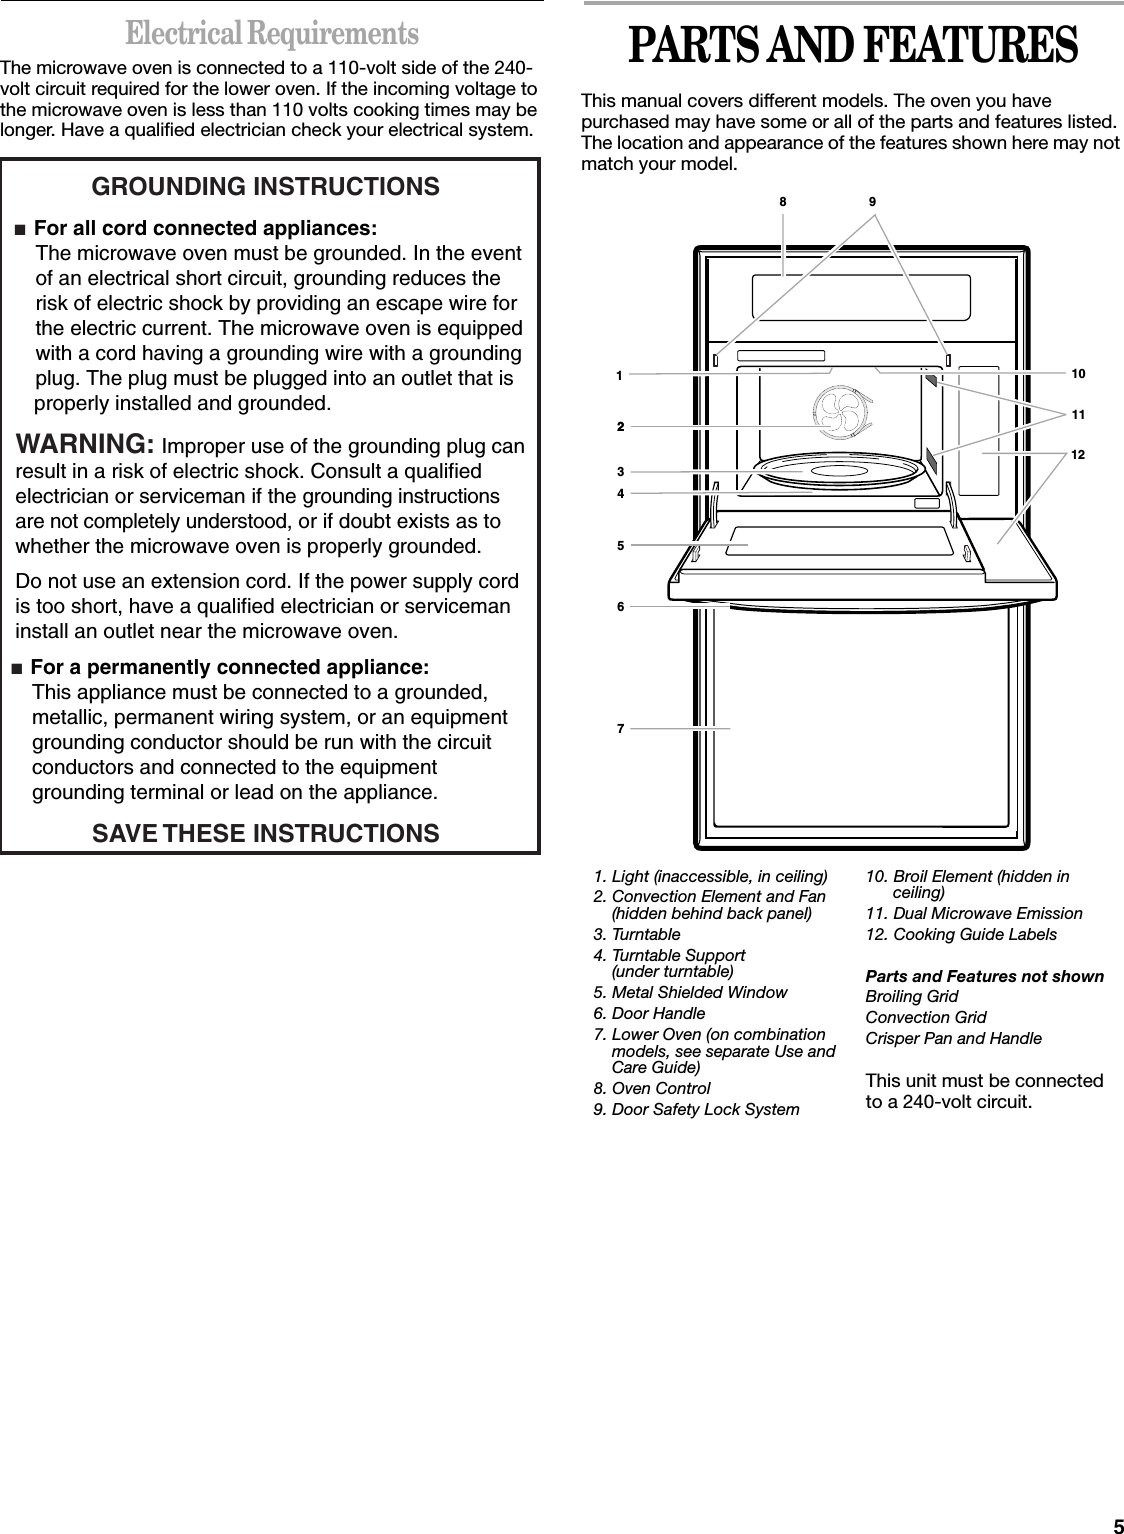 5Electrical RequirementsThe microwave oven is connected to a 110-volt side of the 240-volt circuit required for the lower oven. If the incoming voltage to the microwave oven is less than 110 volts cooking times may be longer. Have a qualified electrician check your electrical system.PARTS AND FEATURESThis manual covers different models. The oven you have purchased may have some or all of the parts and features listed. The location and appearance of the features shown here may not match your model.GROUNDING INSTRUCTIONS■  For all cord connected appliances: The microwave oven must be grounded. In the event  of an electrical short circuit, grounding reduces the  risk of electric shock by providing an escape wire for  the electric current. The microwave oven is equipped  with a cord having a grounding wire with a grounding  plug. The plug must be plugged into an outlet that is properly installed and grounded.WARNING: Improper use of the grounding plug can result in a risk of electric shock. Consult a qualified electrician or serviceman if the grounding instructions are not completely understood, or if doubt exists as to whether the microwave oven is properly grounded. ■  For a permanently connected appliance: This appliance must be connected to a grounded,  metallic, permanent wiring system, or an equipment  grounding conductor should be run with the circuit  conductors and connected to the equipment  grounding terminal or lead on the appliance.Do not use an extension cord. If the power supply cord is too short, have a qualified electrician or serviceman install an outlet near the microwave oven.SAVE THESE INSTRUCTIONS1. Light (inaccessible, in ceiling)2. Convection Element and Fan(hidden behind back panel)3. Turntable4. Turntable Support(under turntable)5. Metal Shielded Window6. Door Handle7. Lower Oven (on combination models, see separate Use and Care Guide)8. Oven Control9. Door Safety Lock System10. Broil Element (hidden in  ceiling)11. Dual Microwave Emission12. C